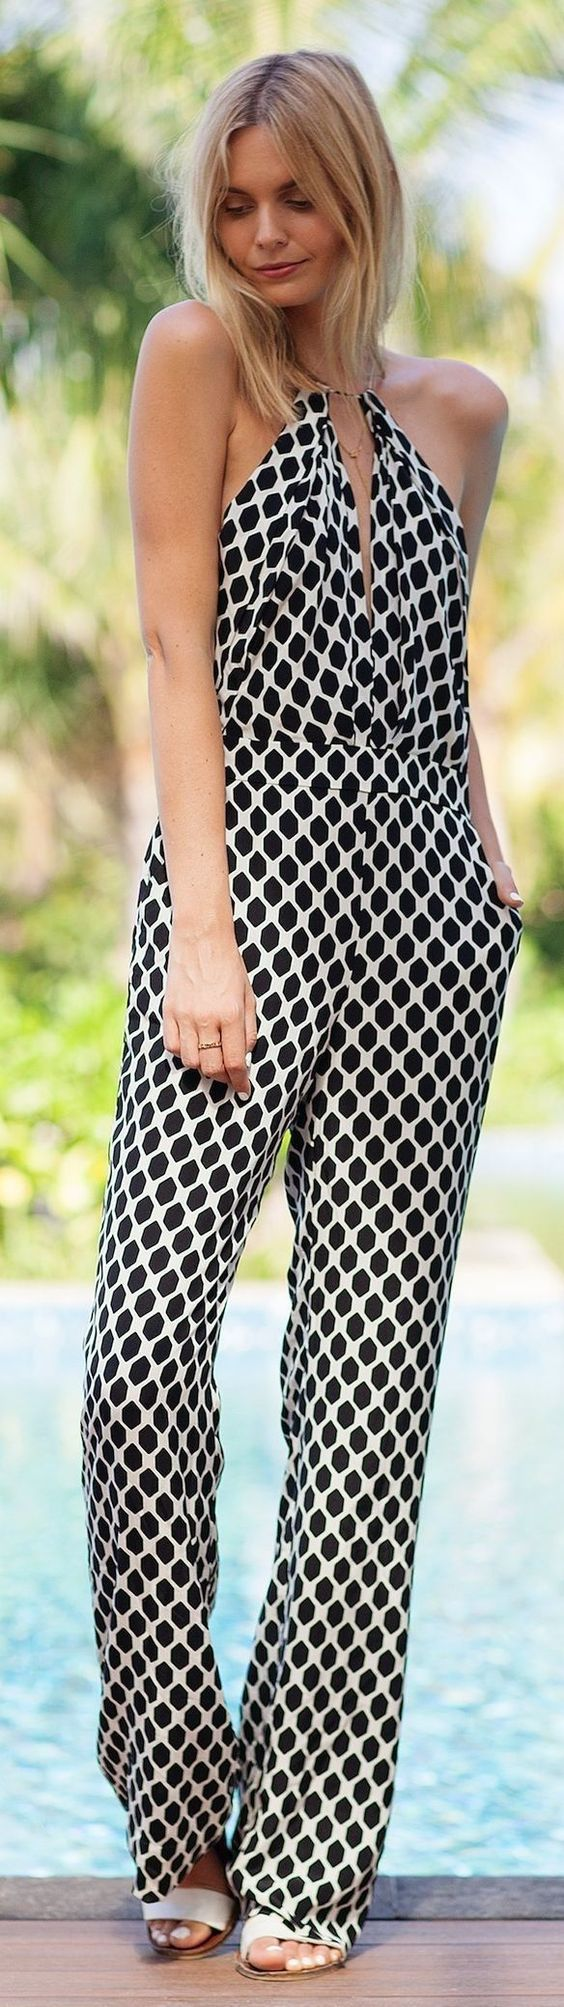 Black and white overall halter